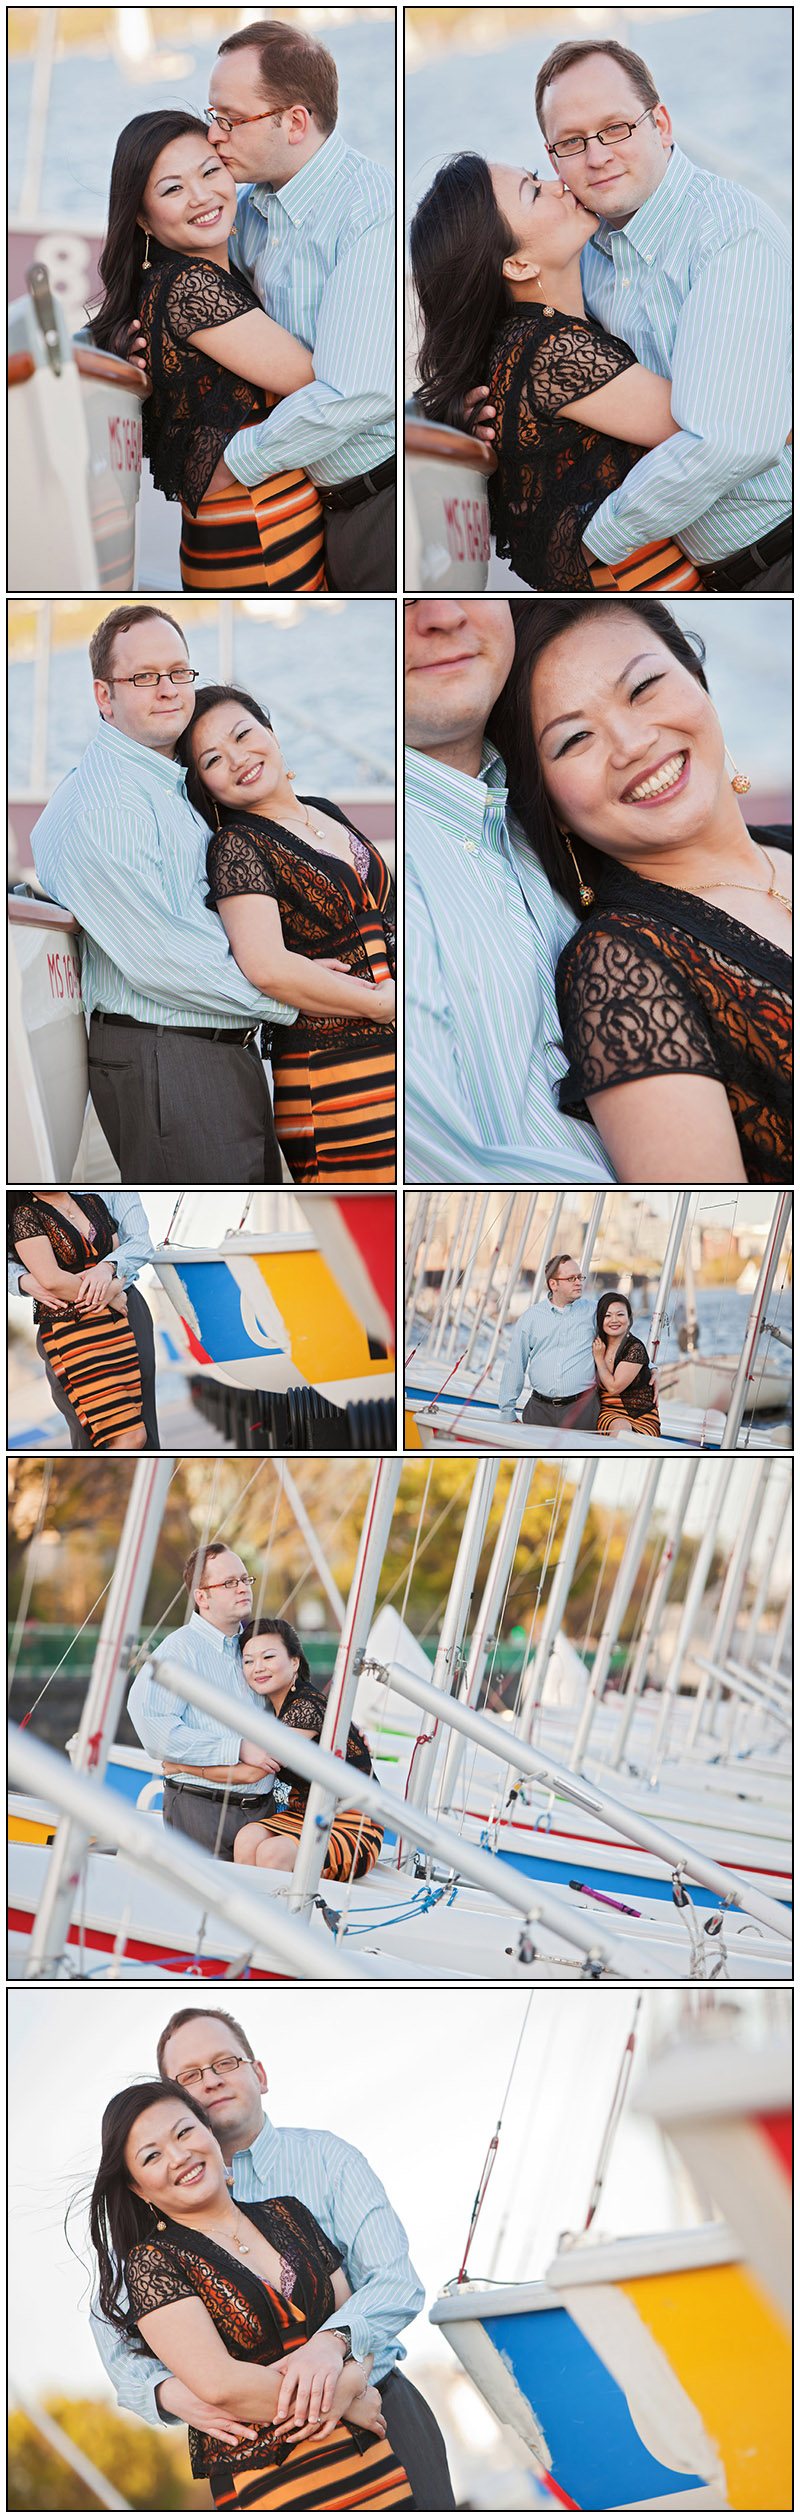 MIT ENGAGEMENT SHOOT | CAMBRIDGE WEDDING PHOTOGRAPHERS